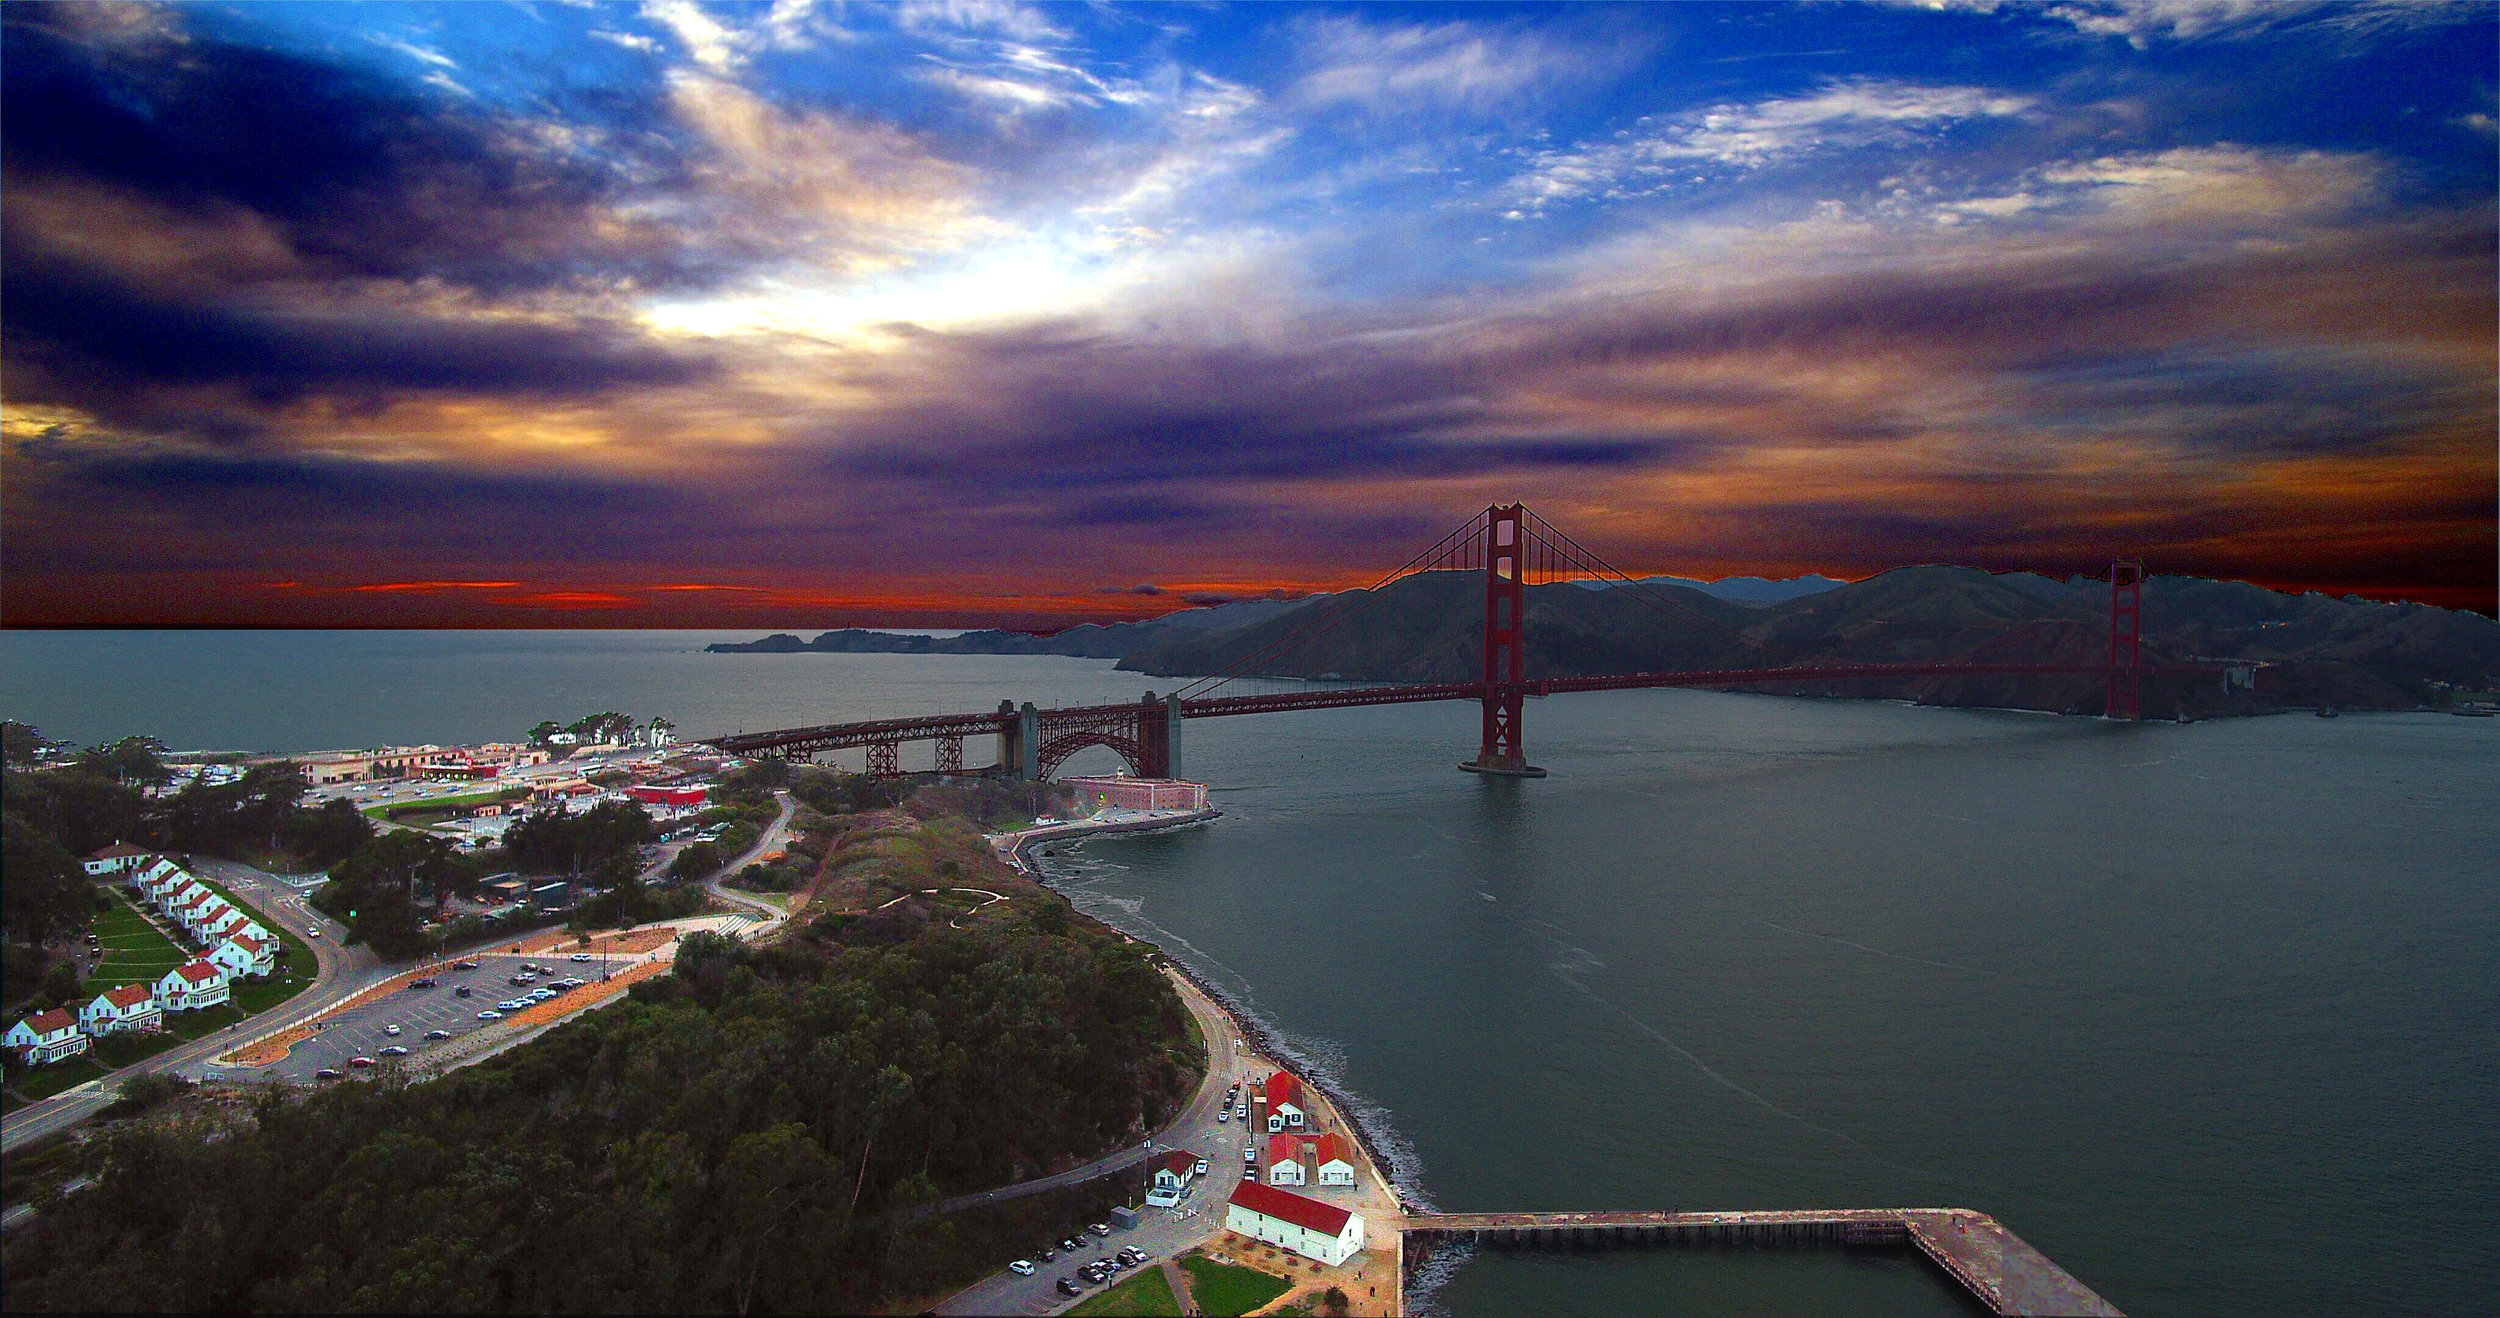 Drones for Aerial Photography in San Francisco